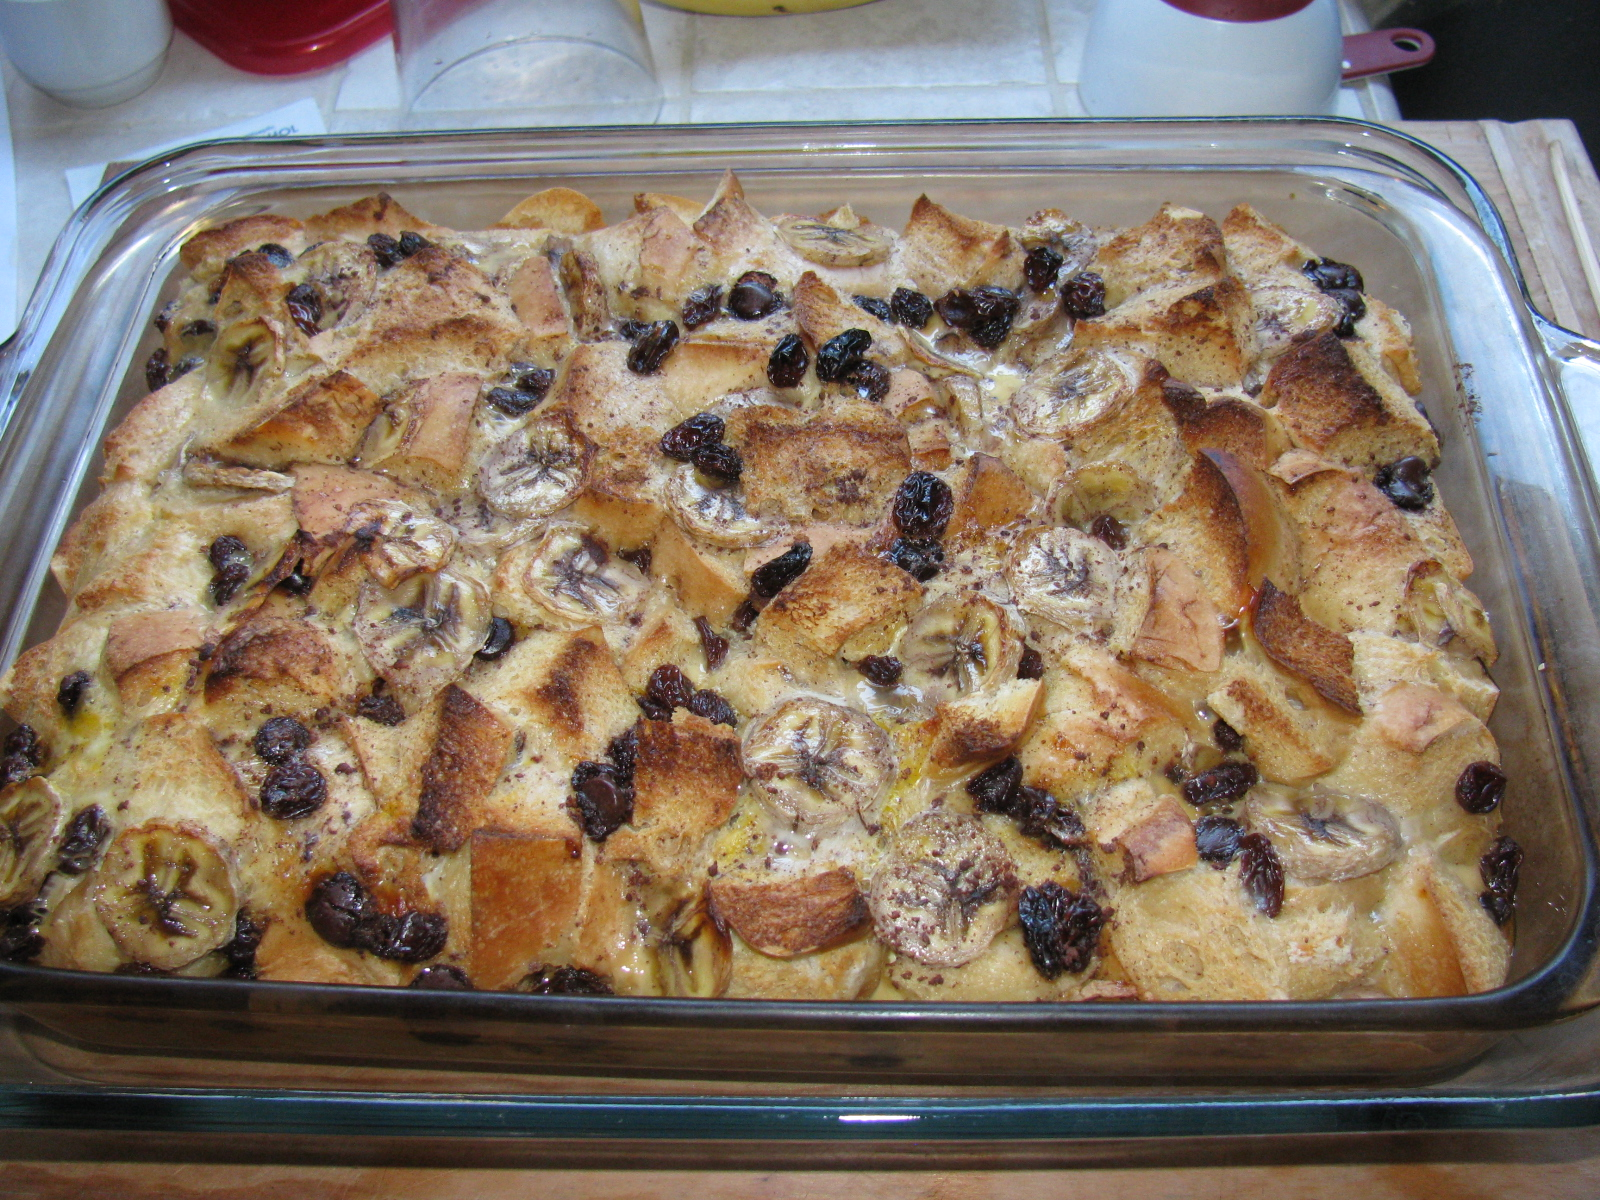 Kh6wz Bread Pudding With Bananas Raisins And Chocolate Chips Fresh From The Oven